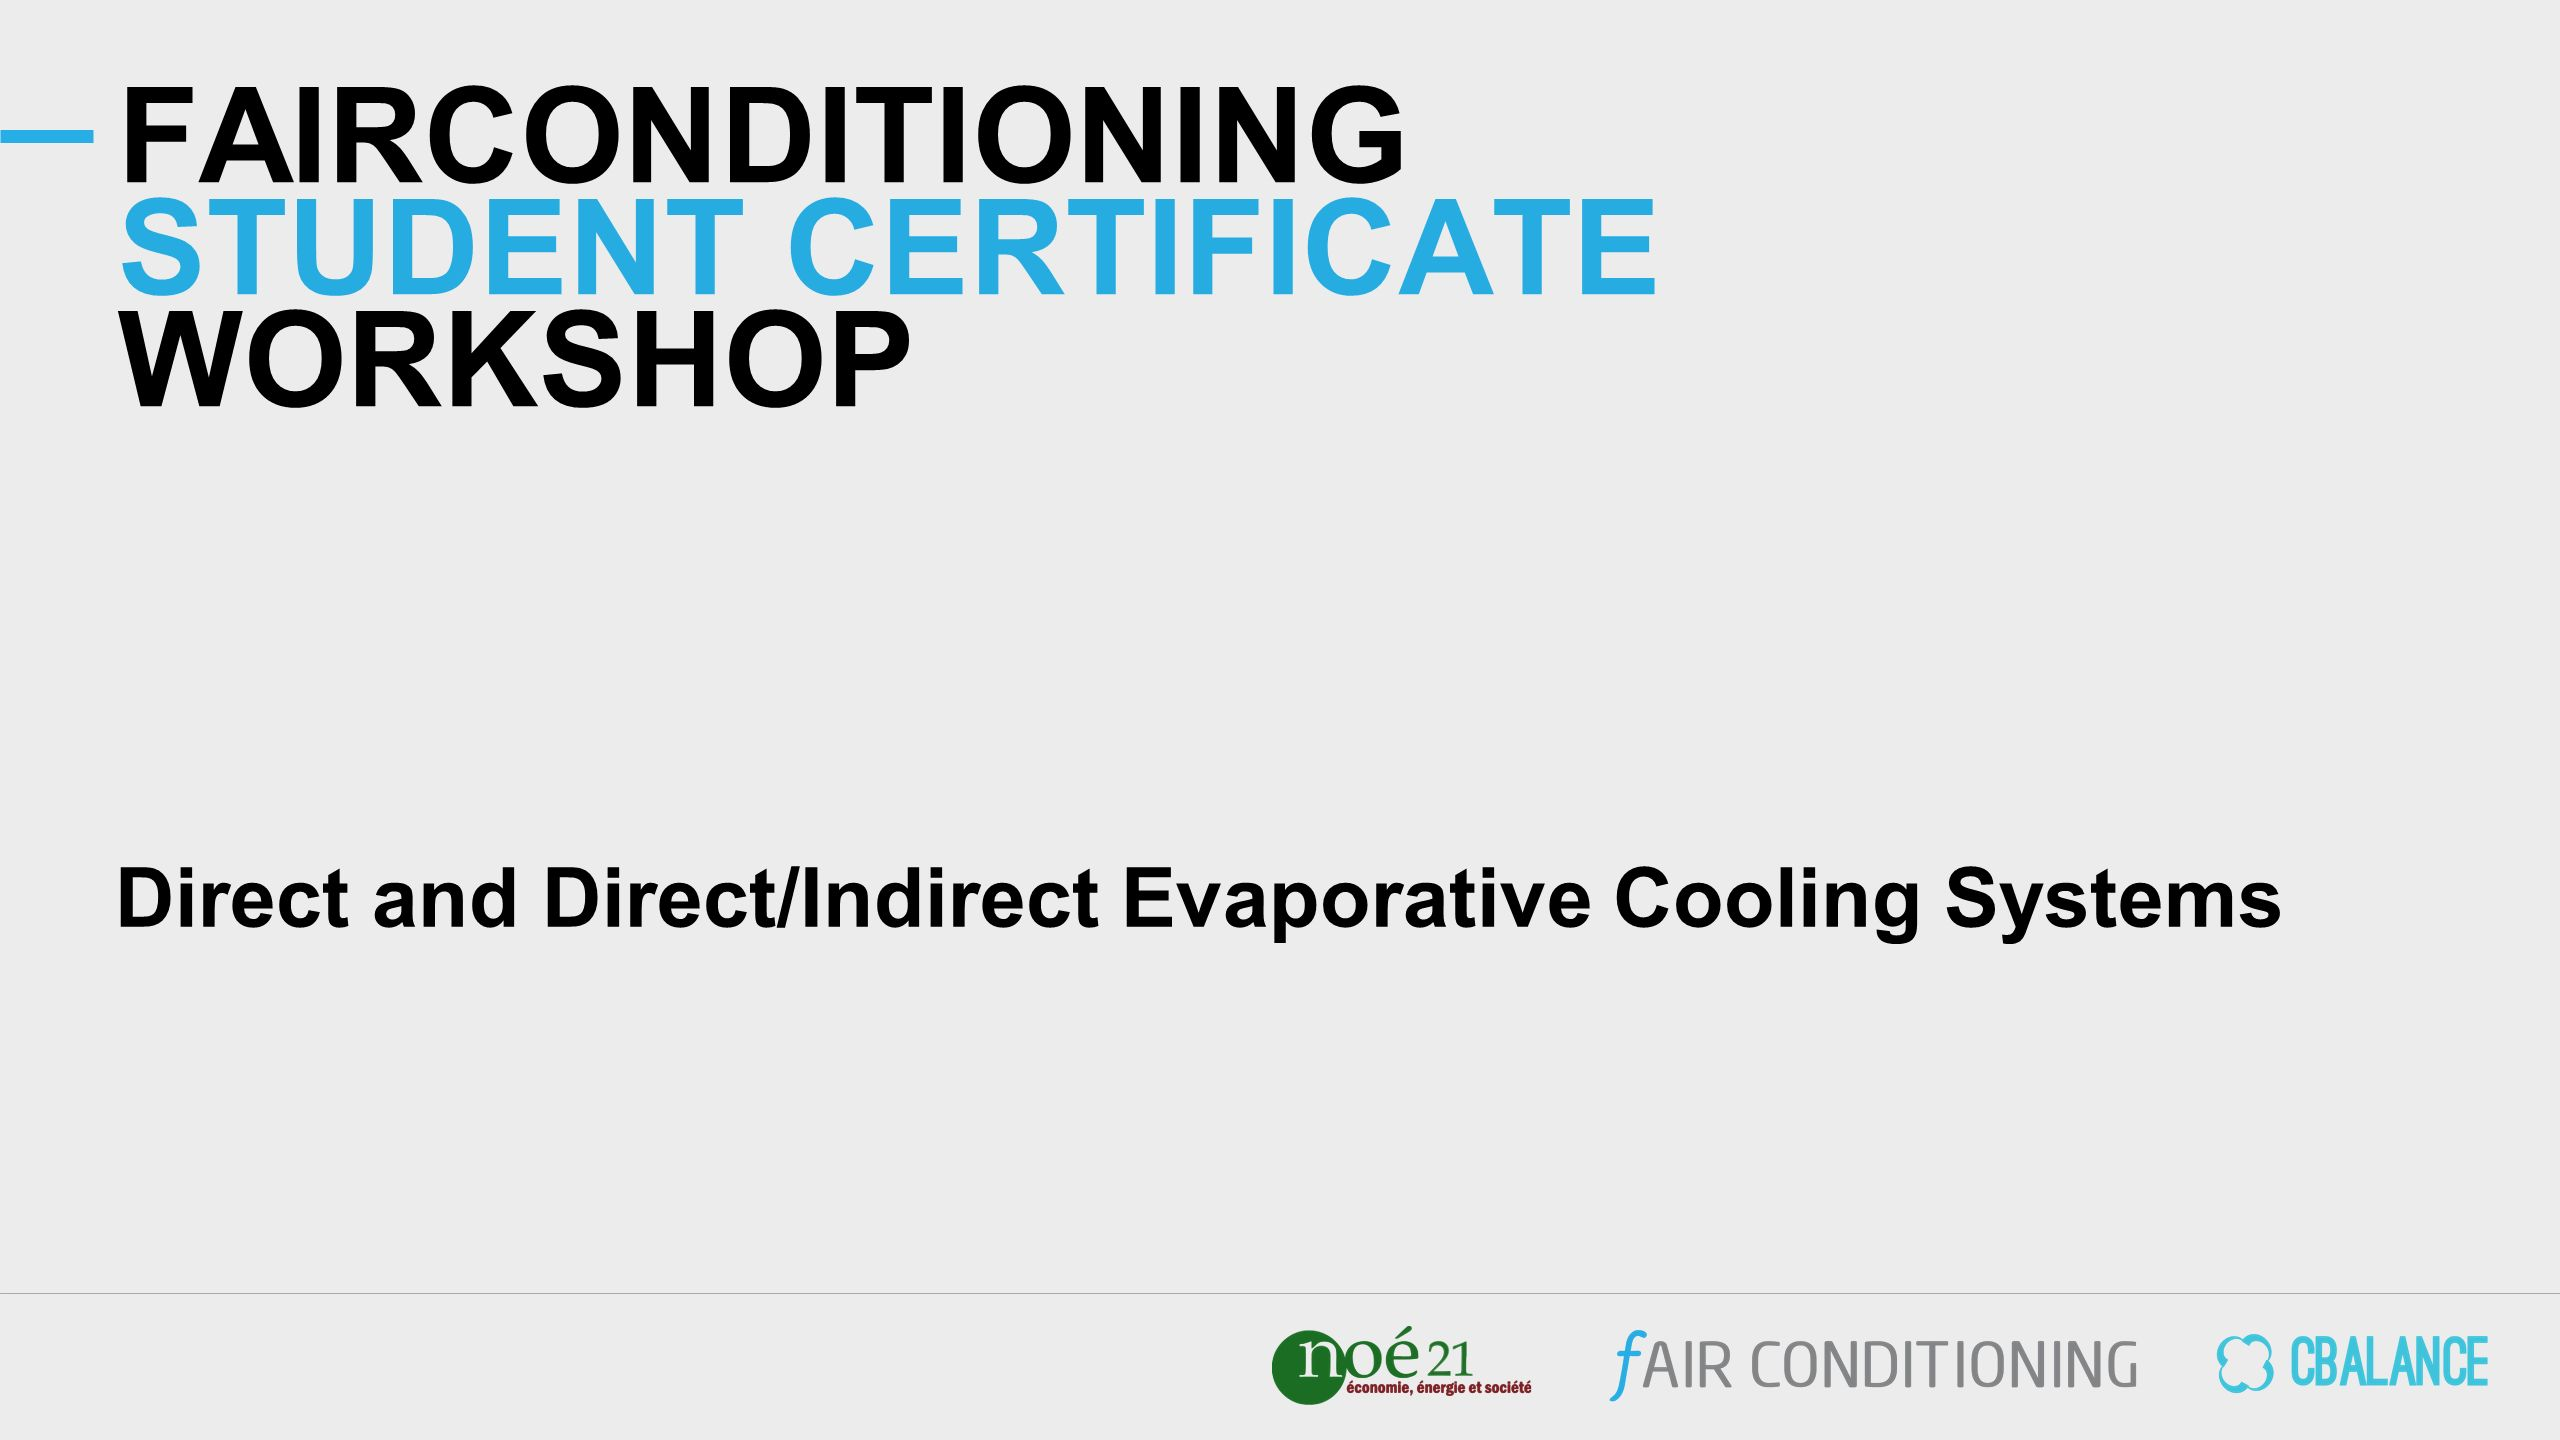 FAIRCONDITIONING STUDENT CERTIFICATE WORKSHOP Direct and Direct